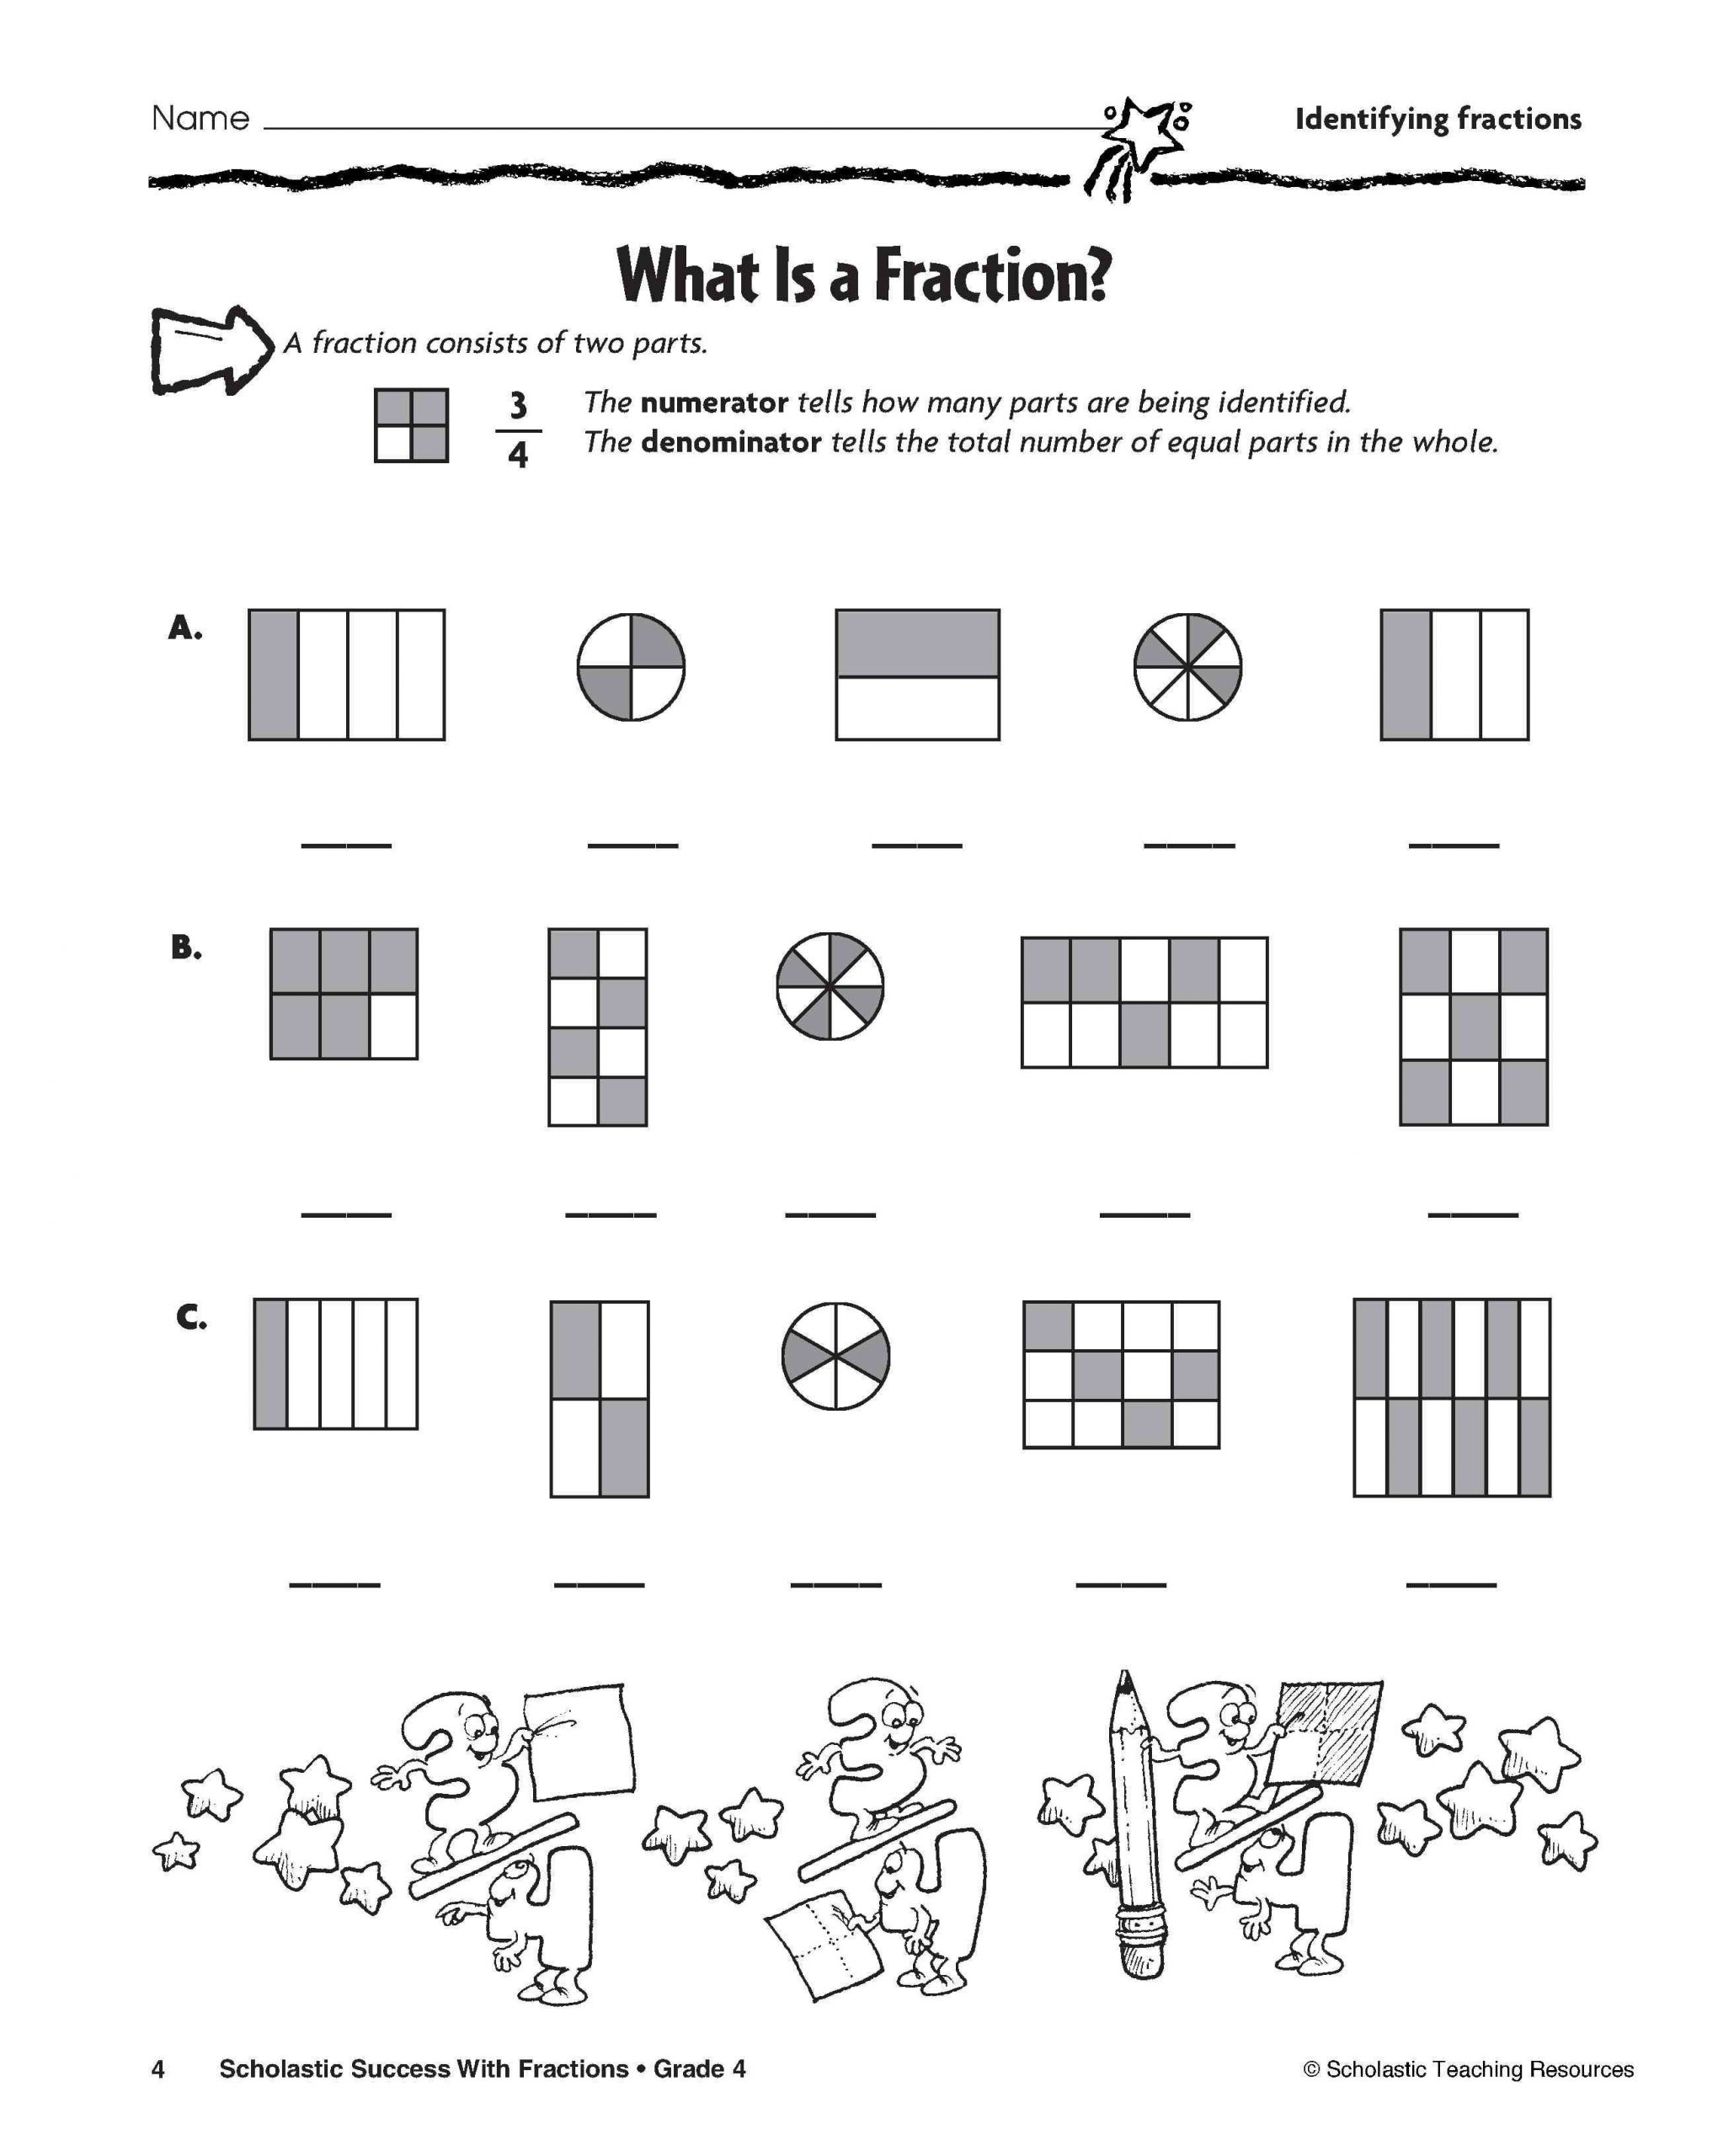 Scholastic Math Worksheets Critical Thinking Activities for Fast Finishers and Beyond